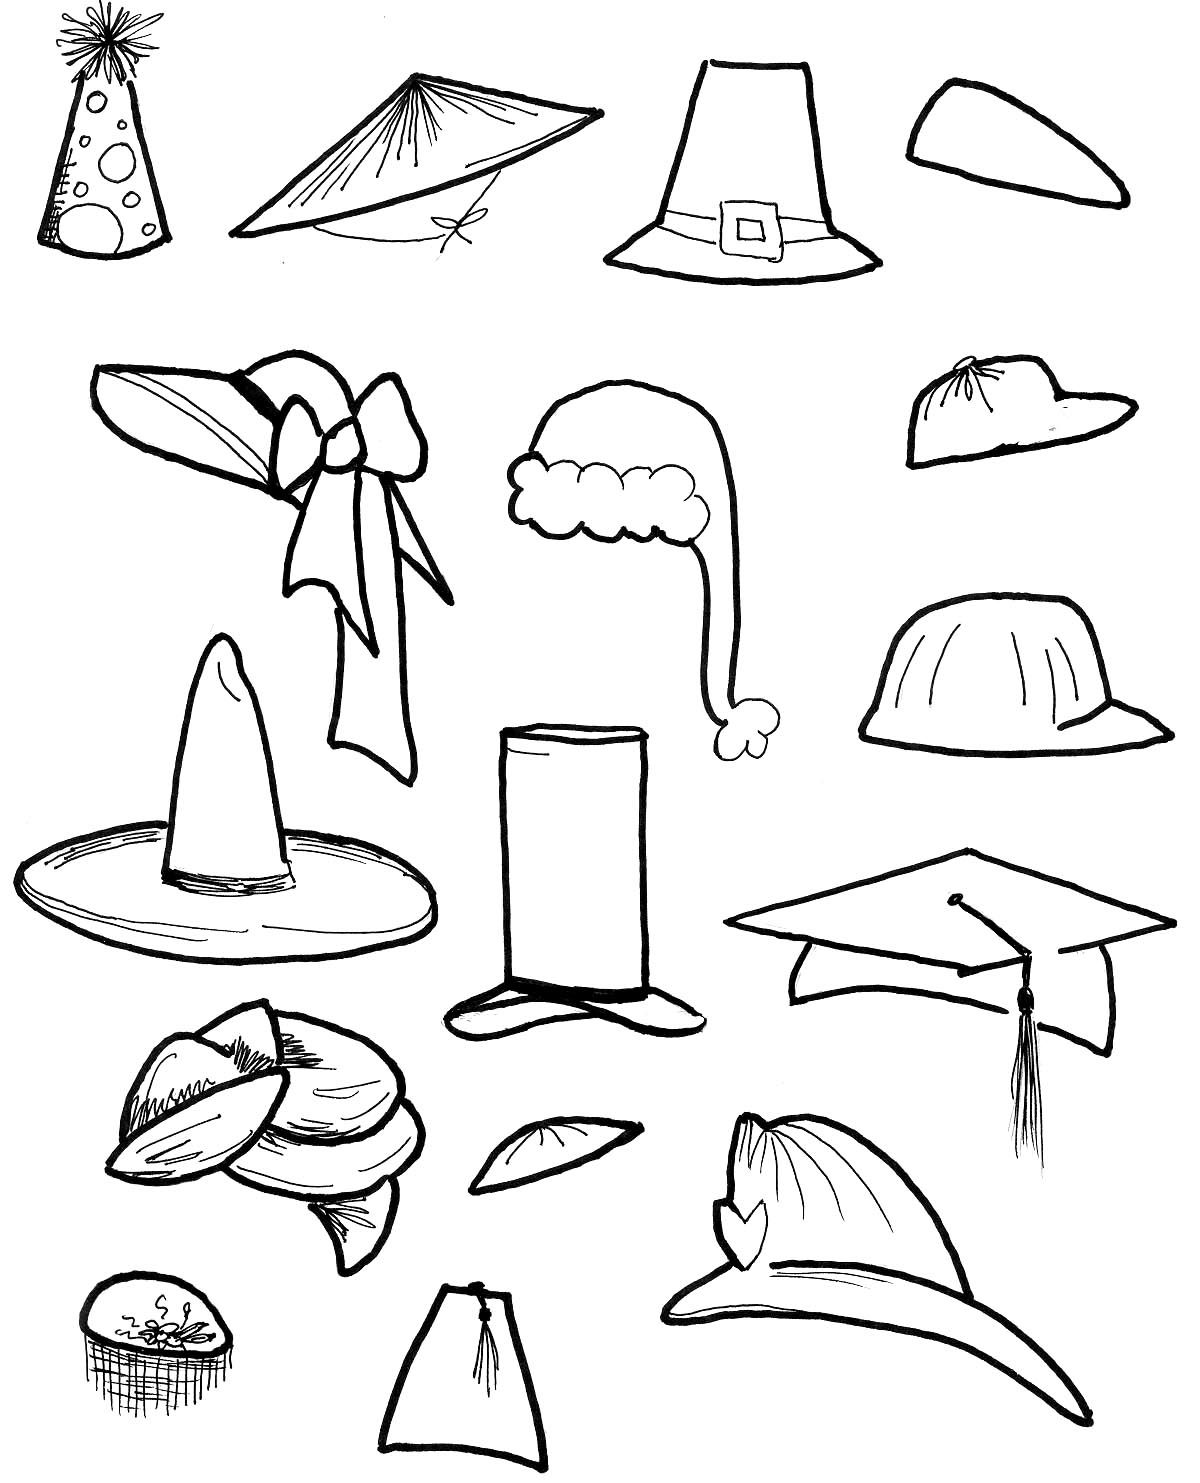 Worksheet Occupation Hats